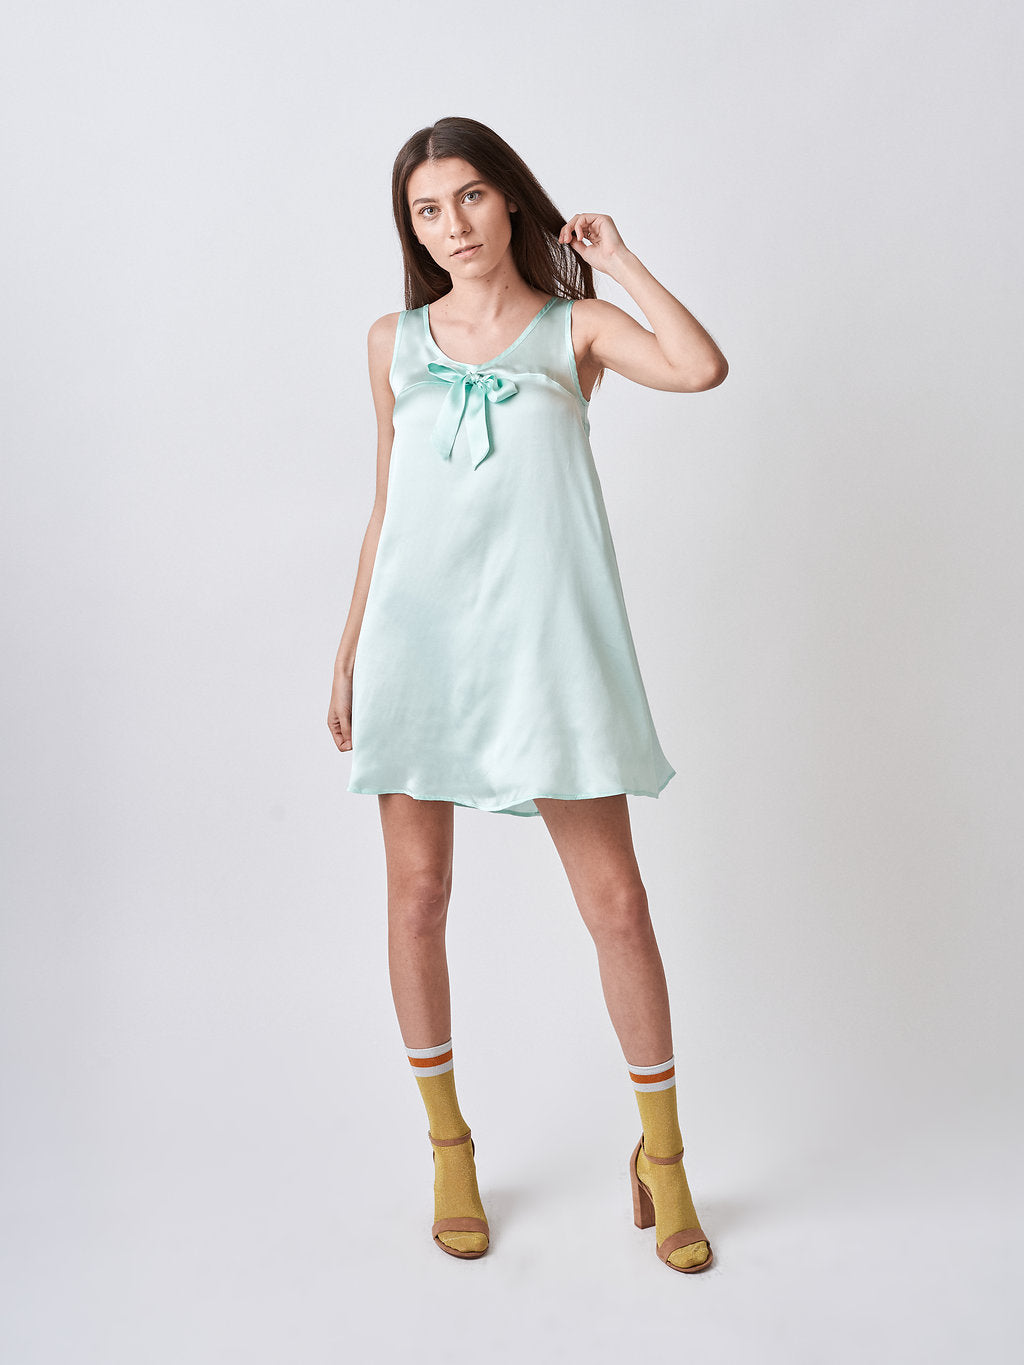 Green Silk Babydoll Dress with bow